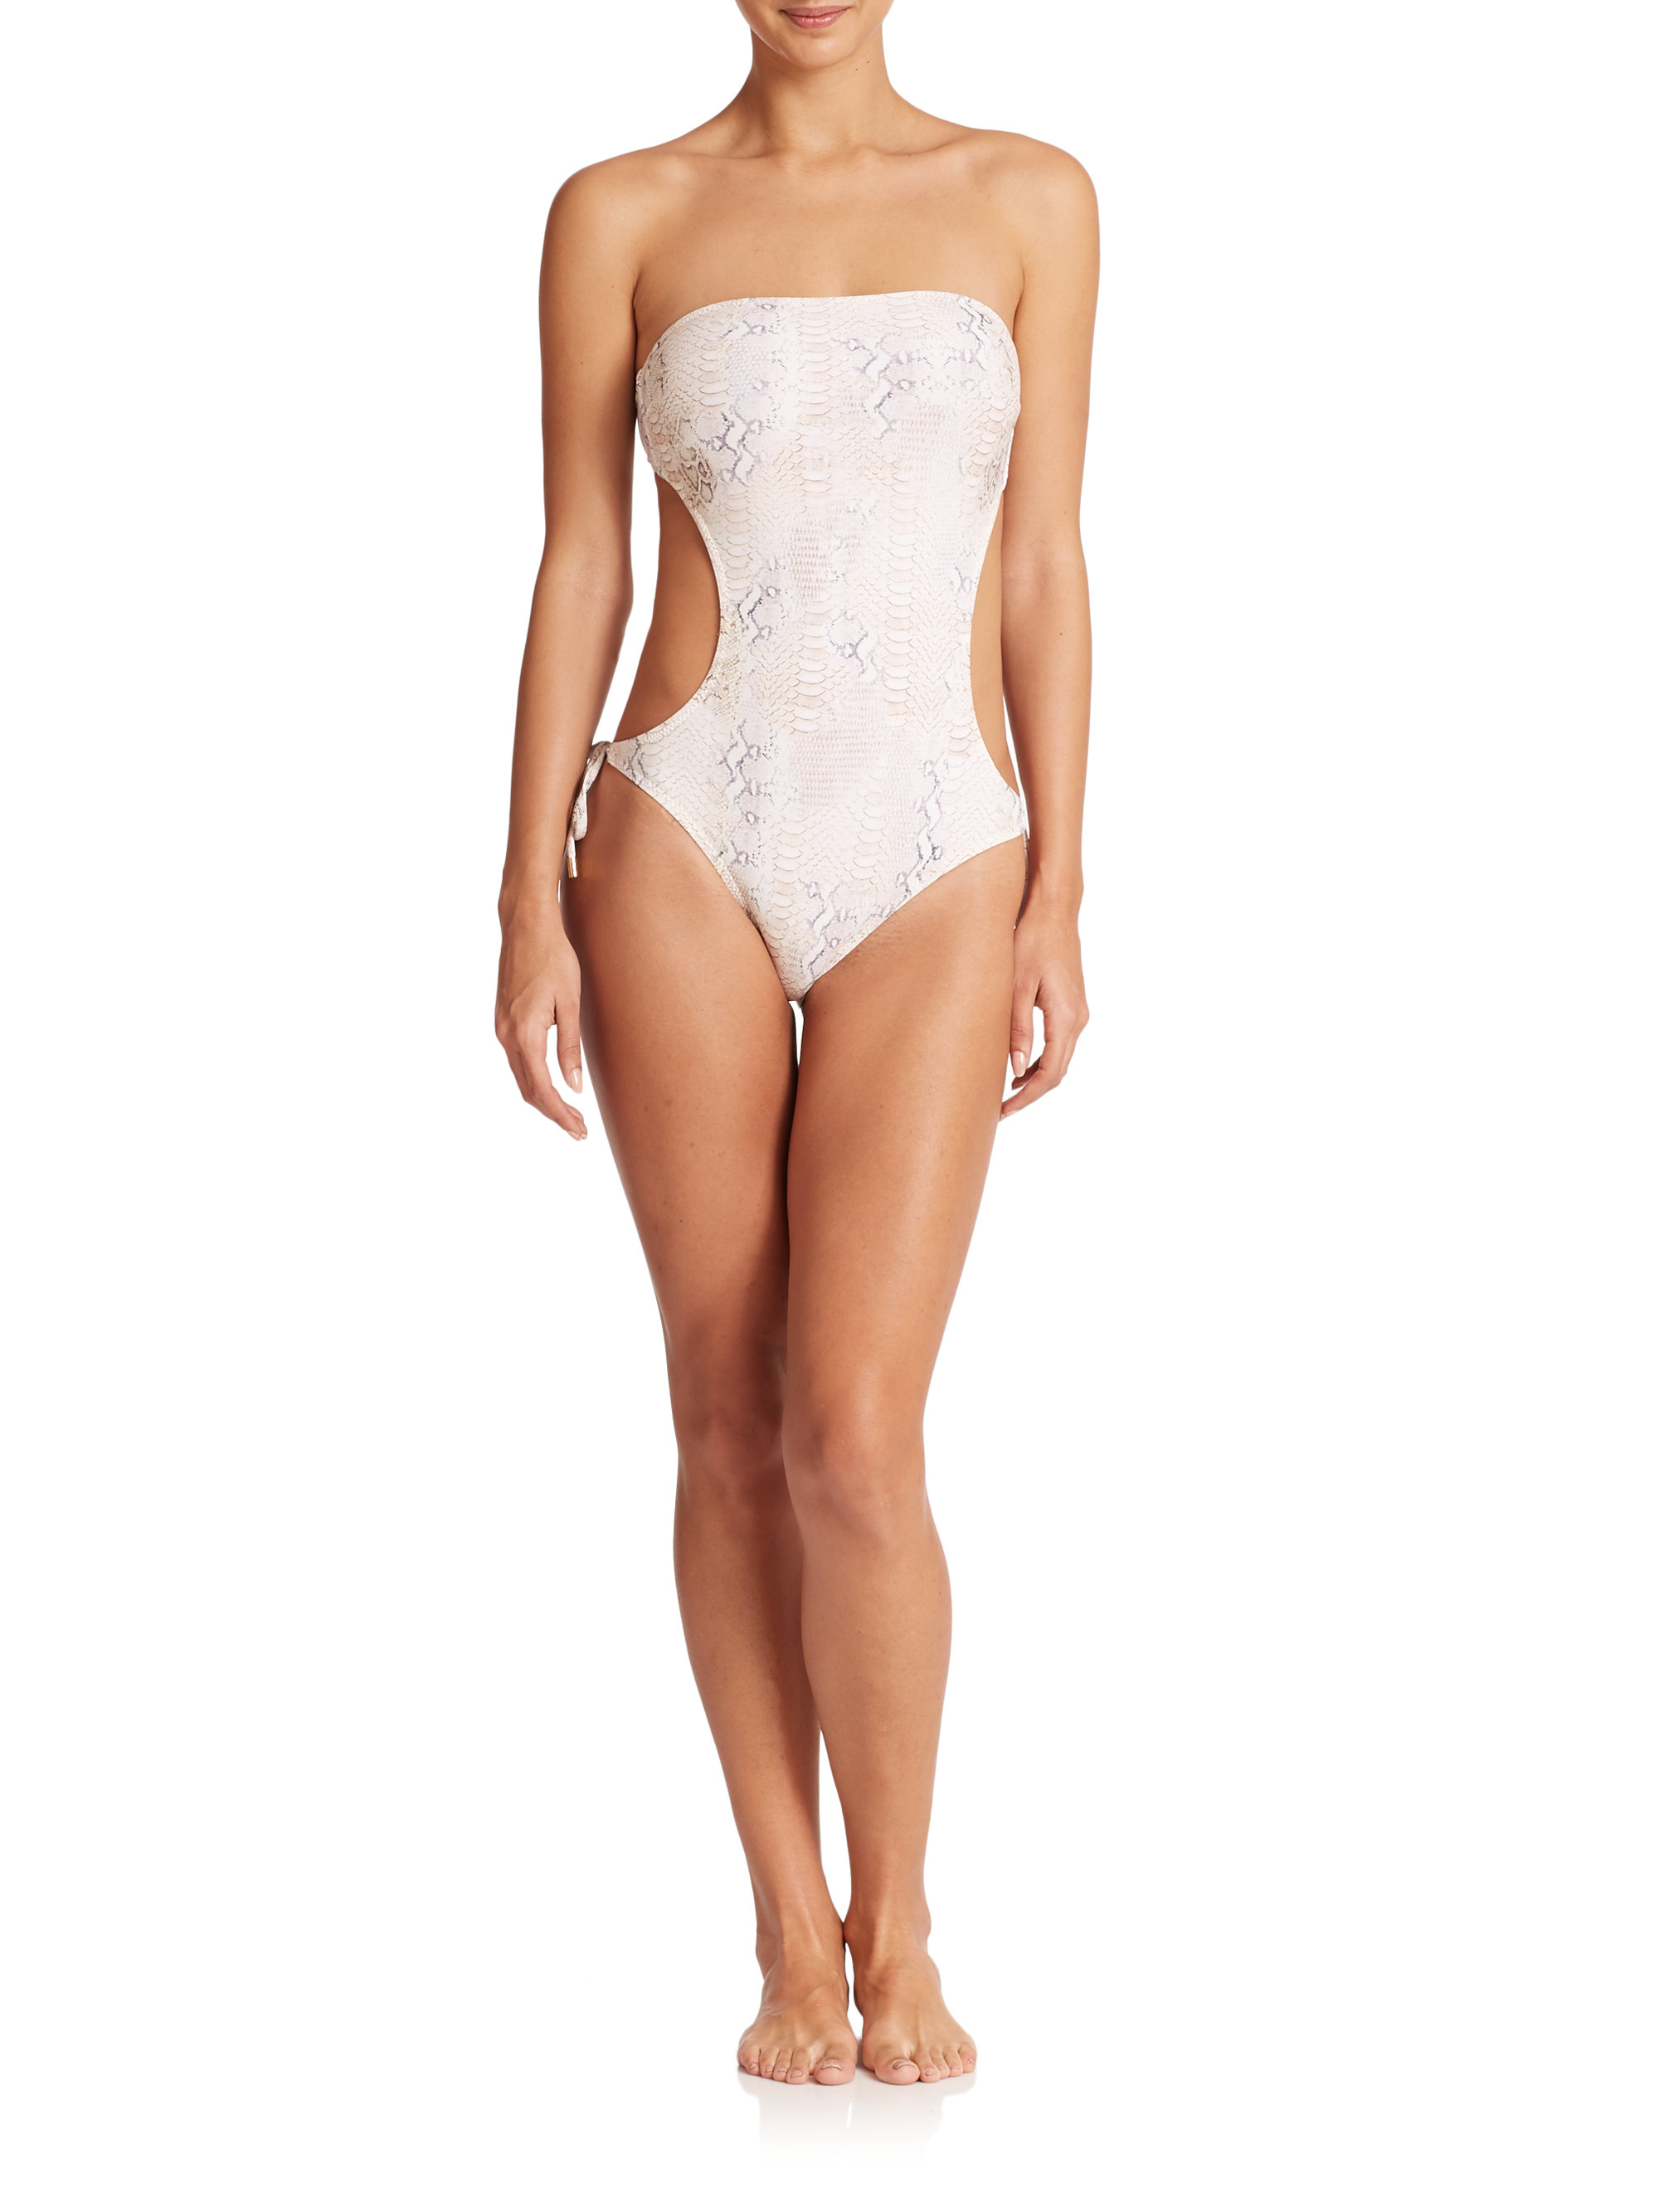 Shop SWIMWEAR - Costumes Melissa Odabash Outlet Footlocker Pictures lxZpV